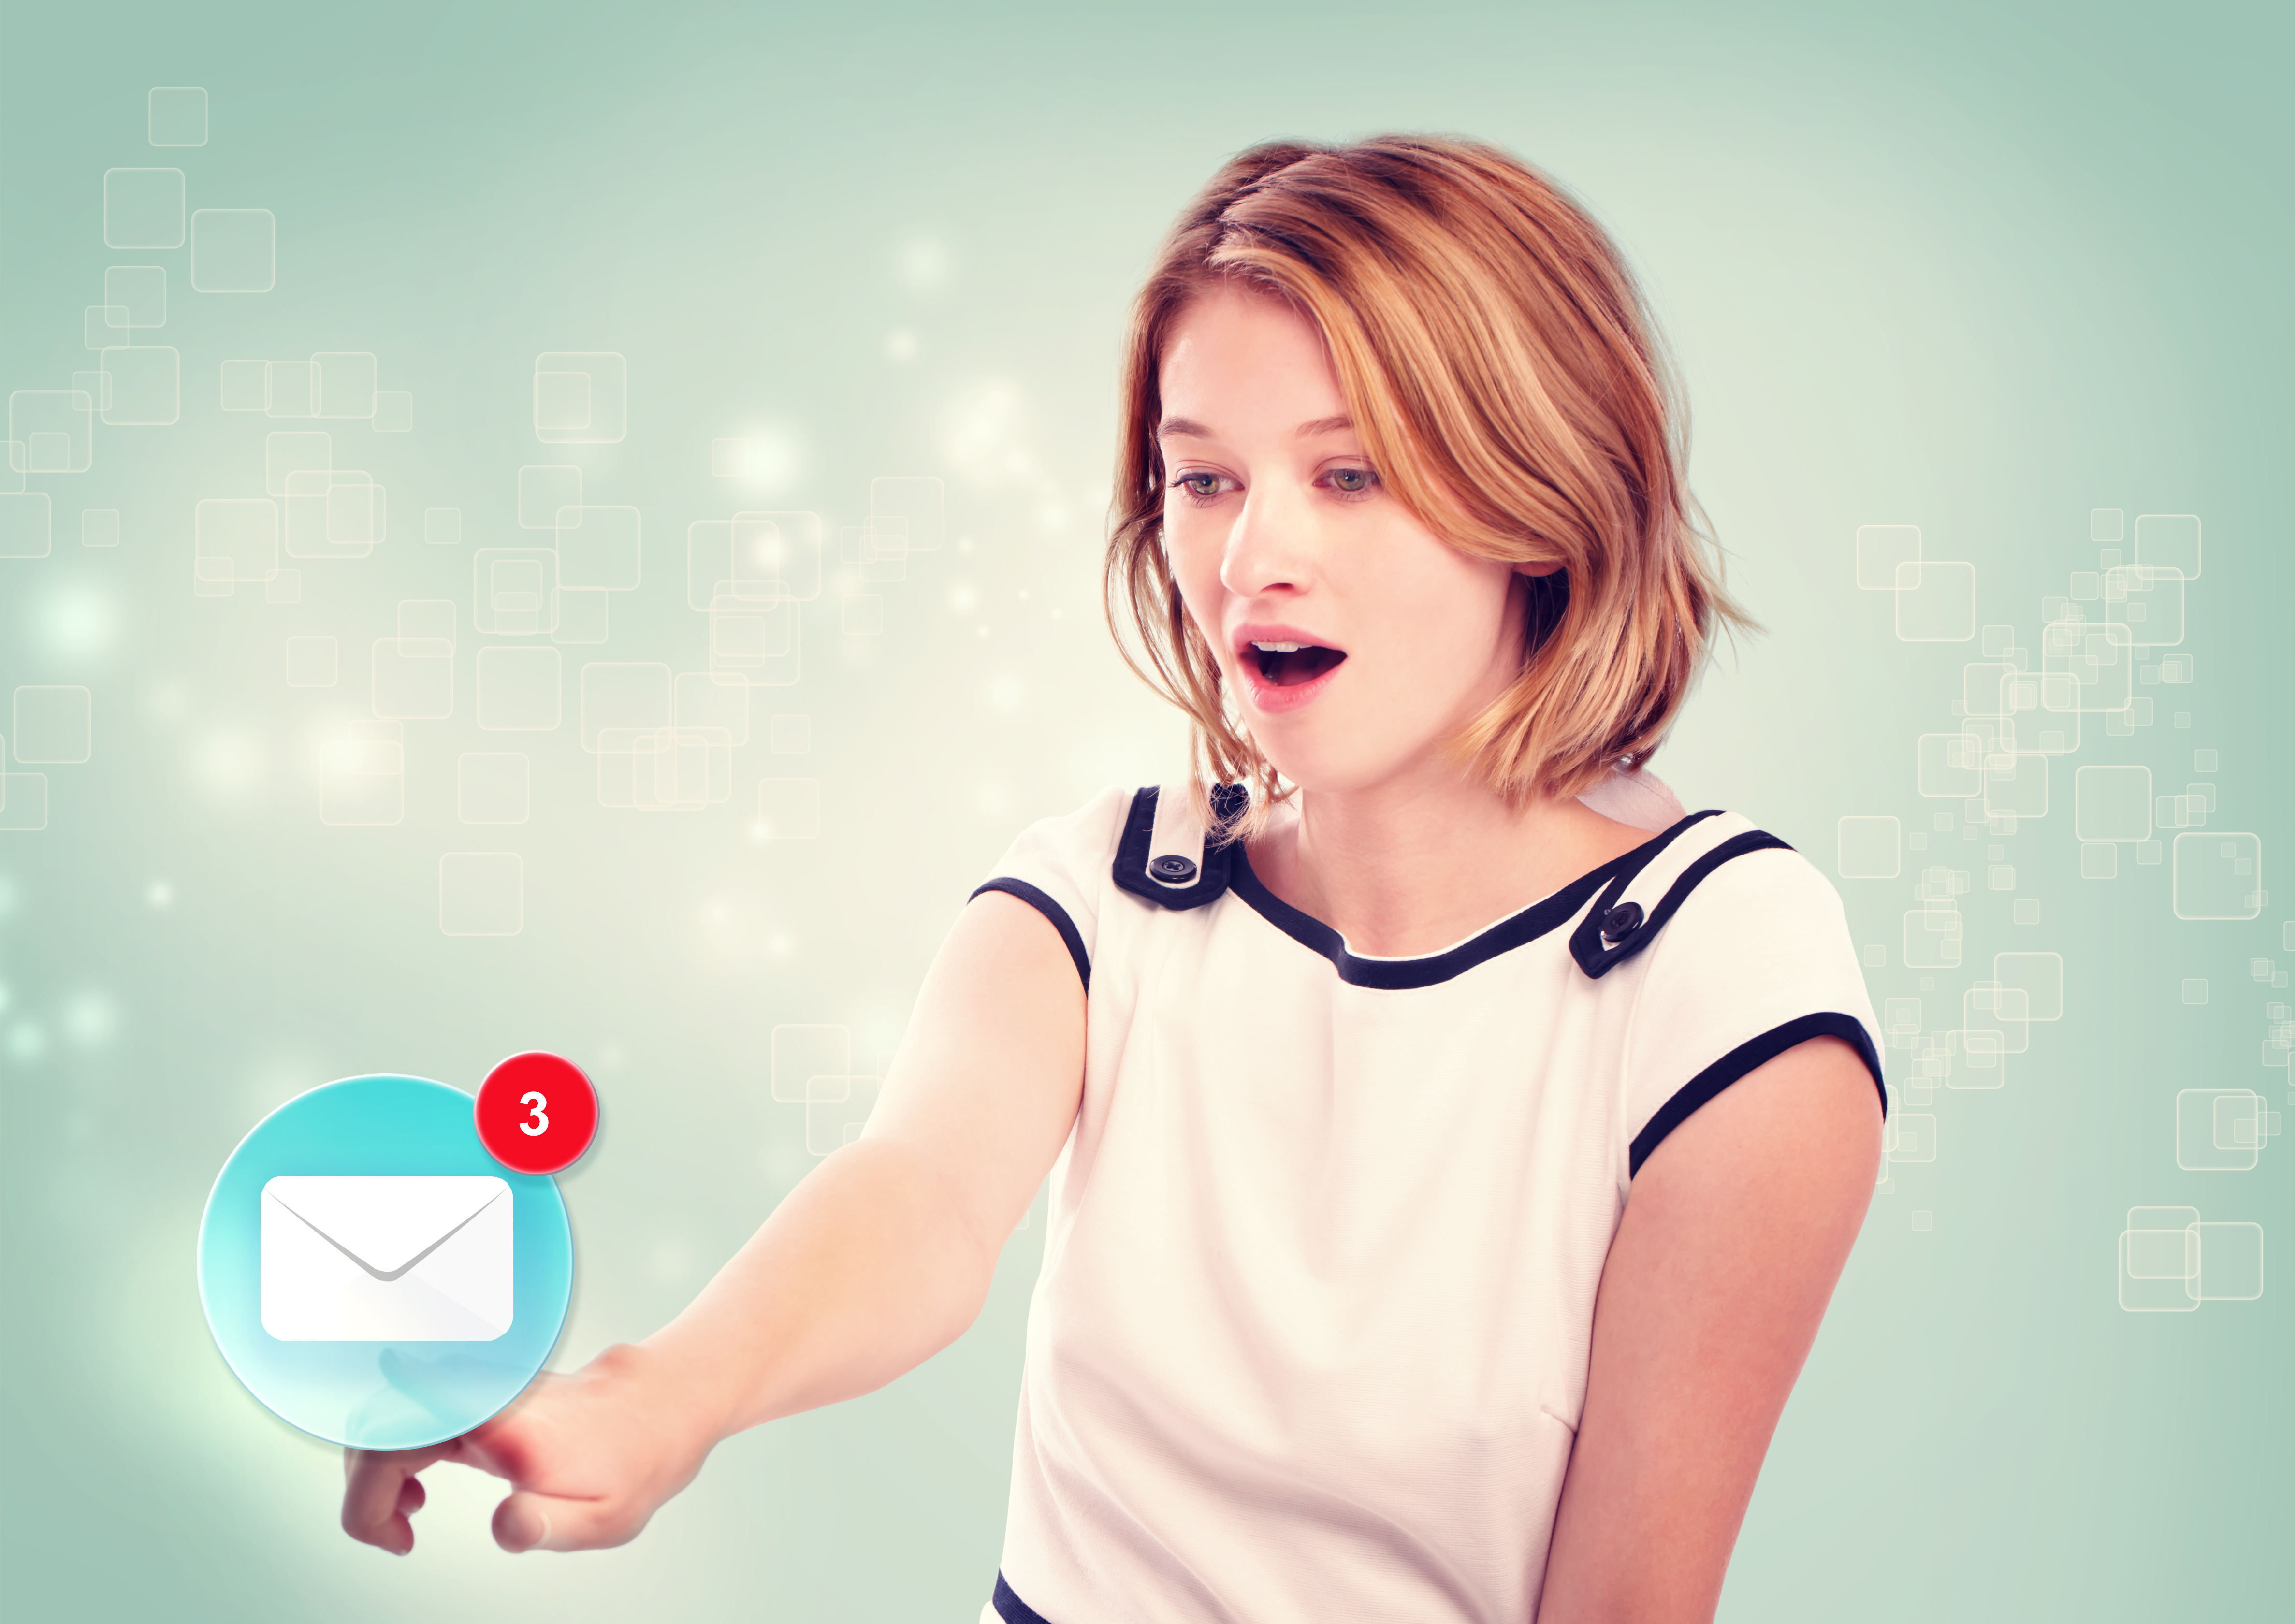 Young woman pointing at email icon